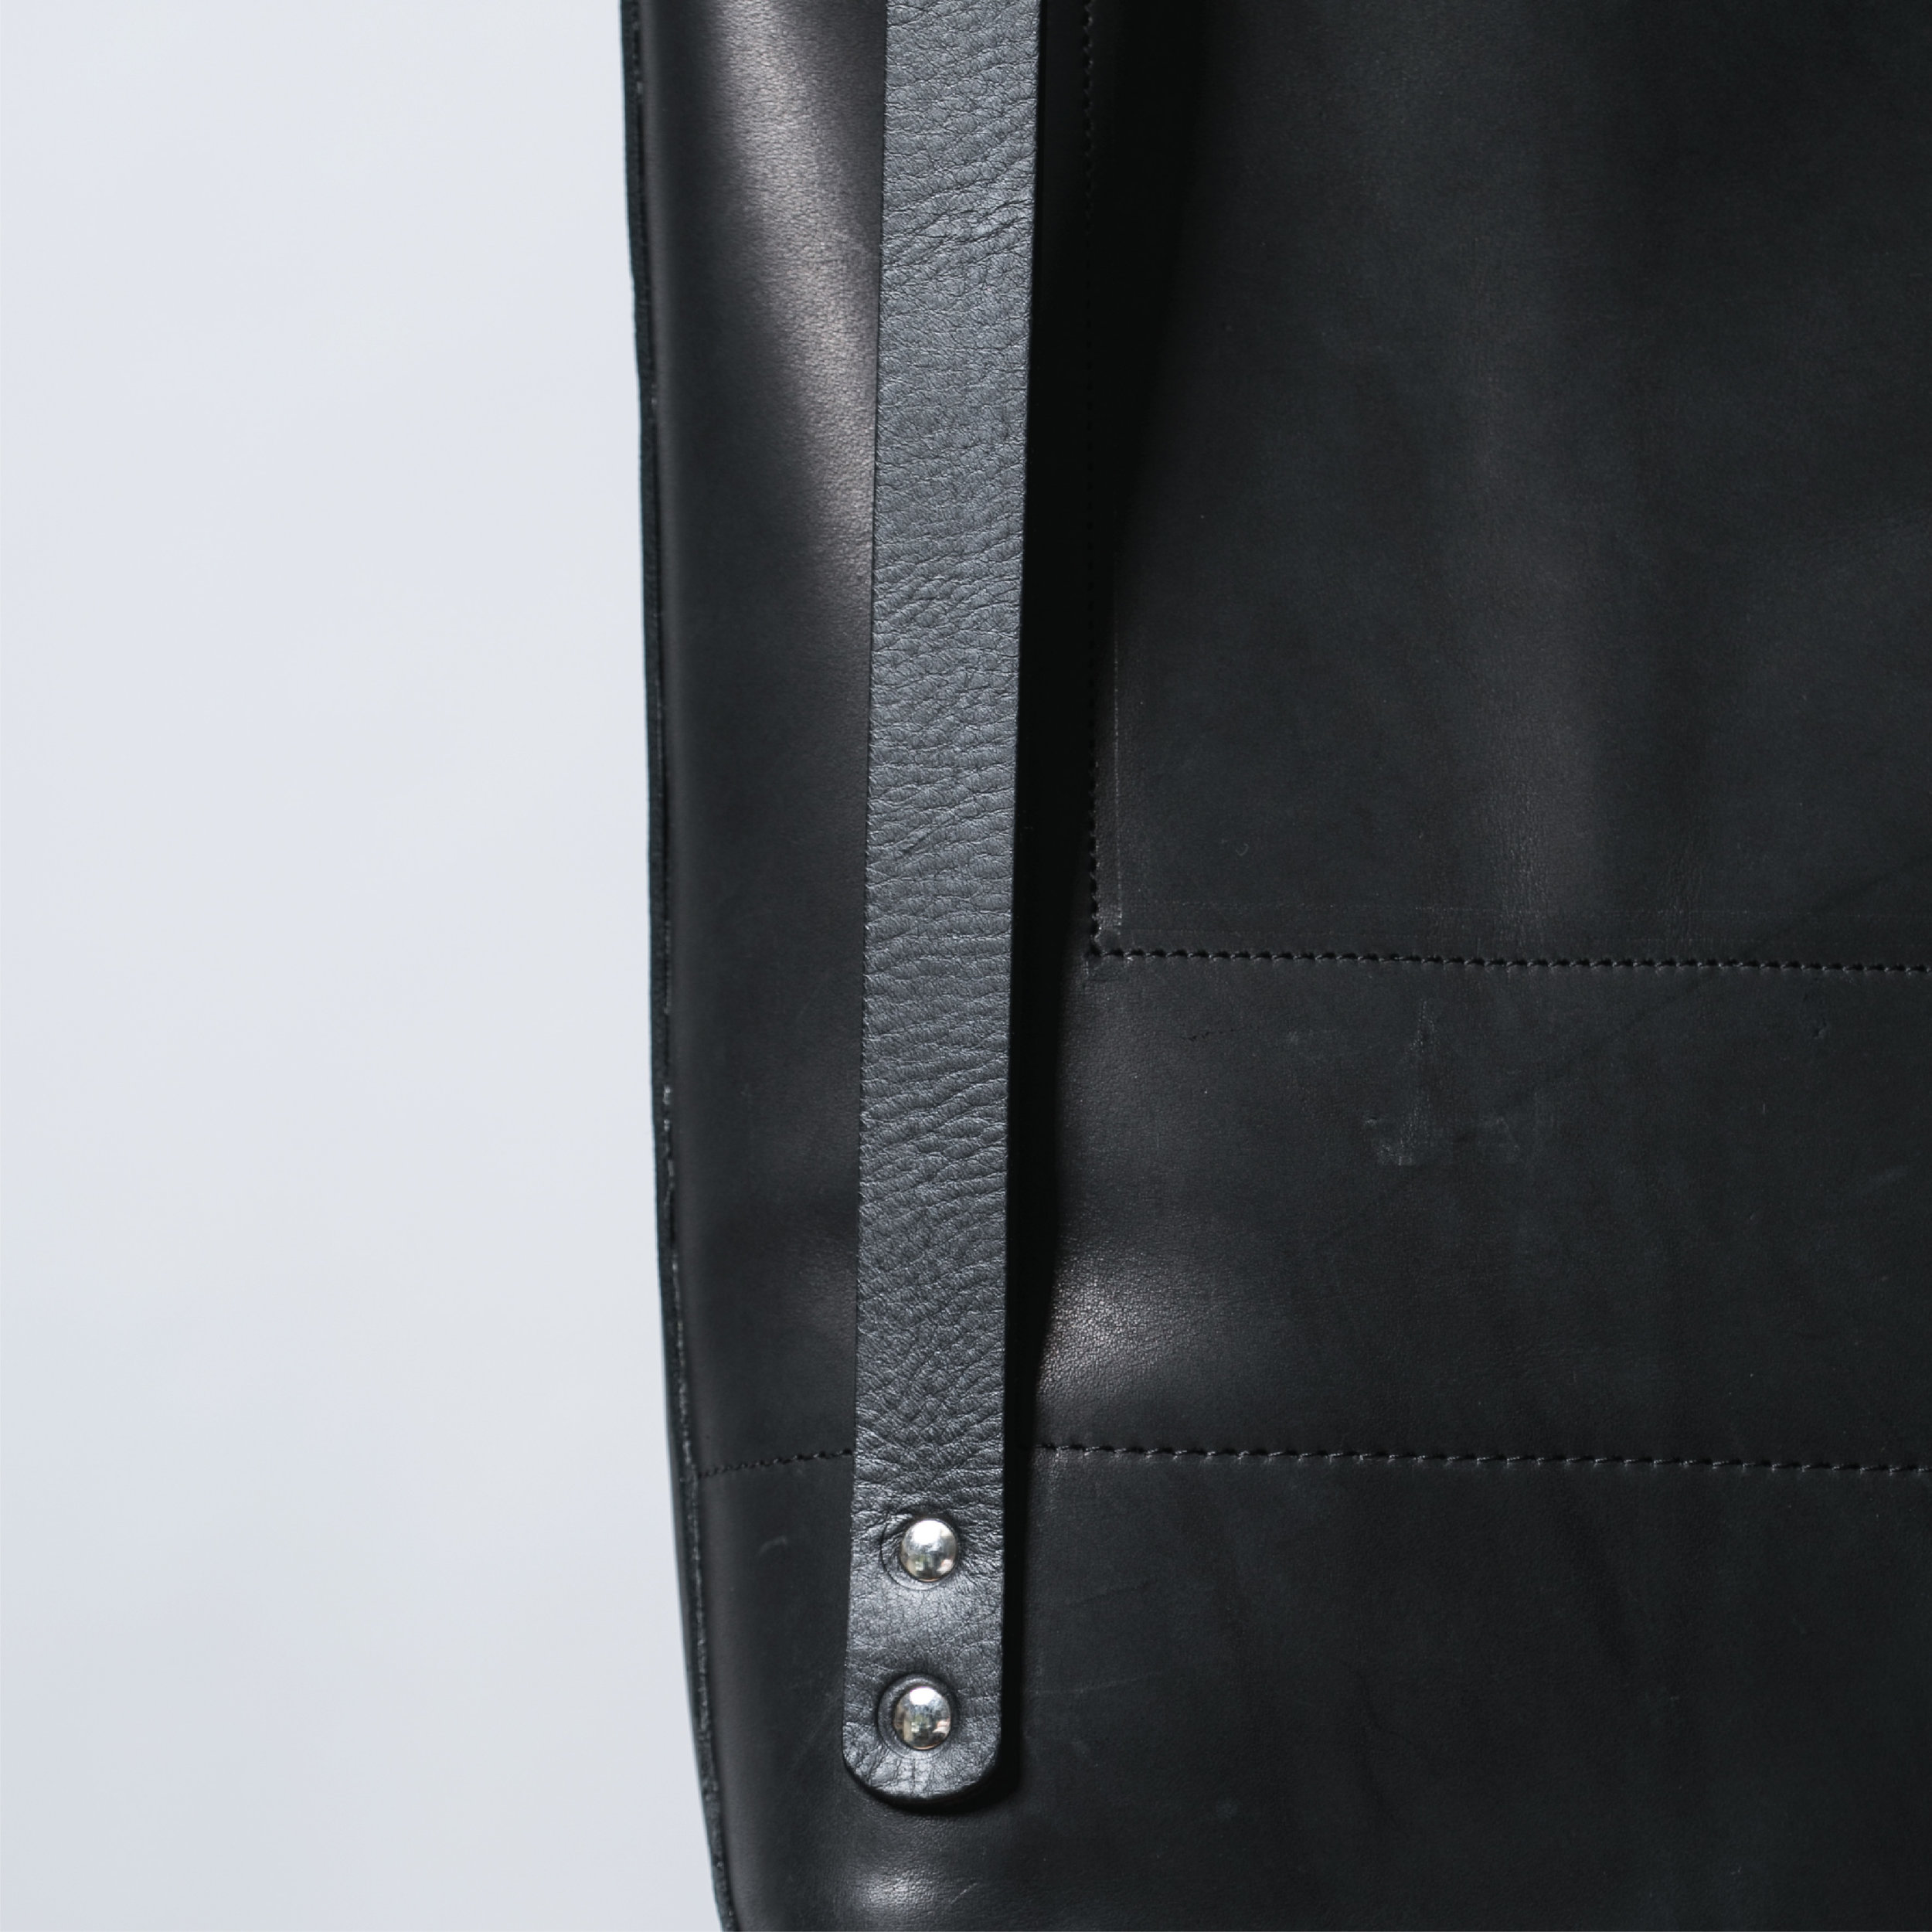 Space produce leather goods products